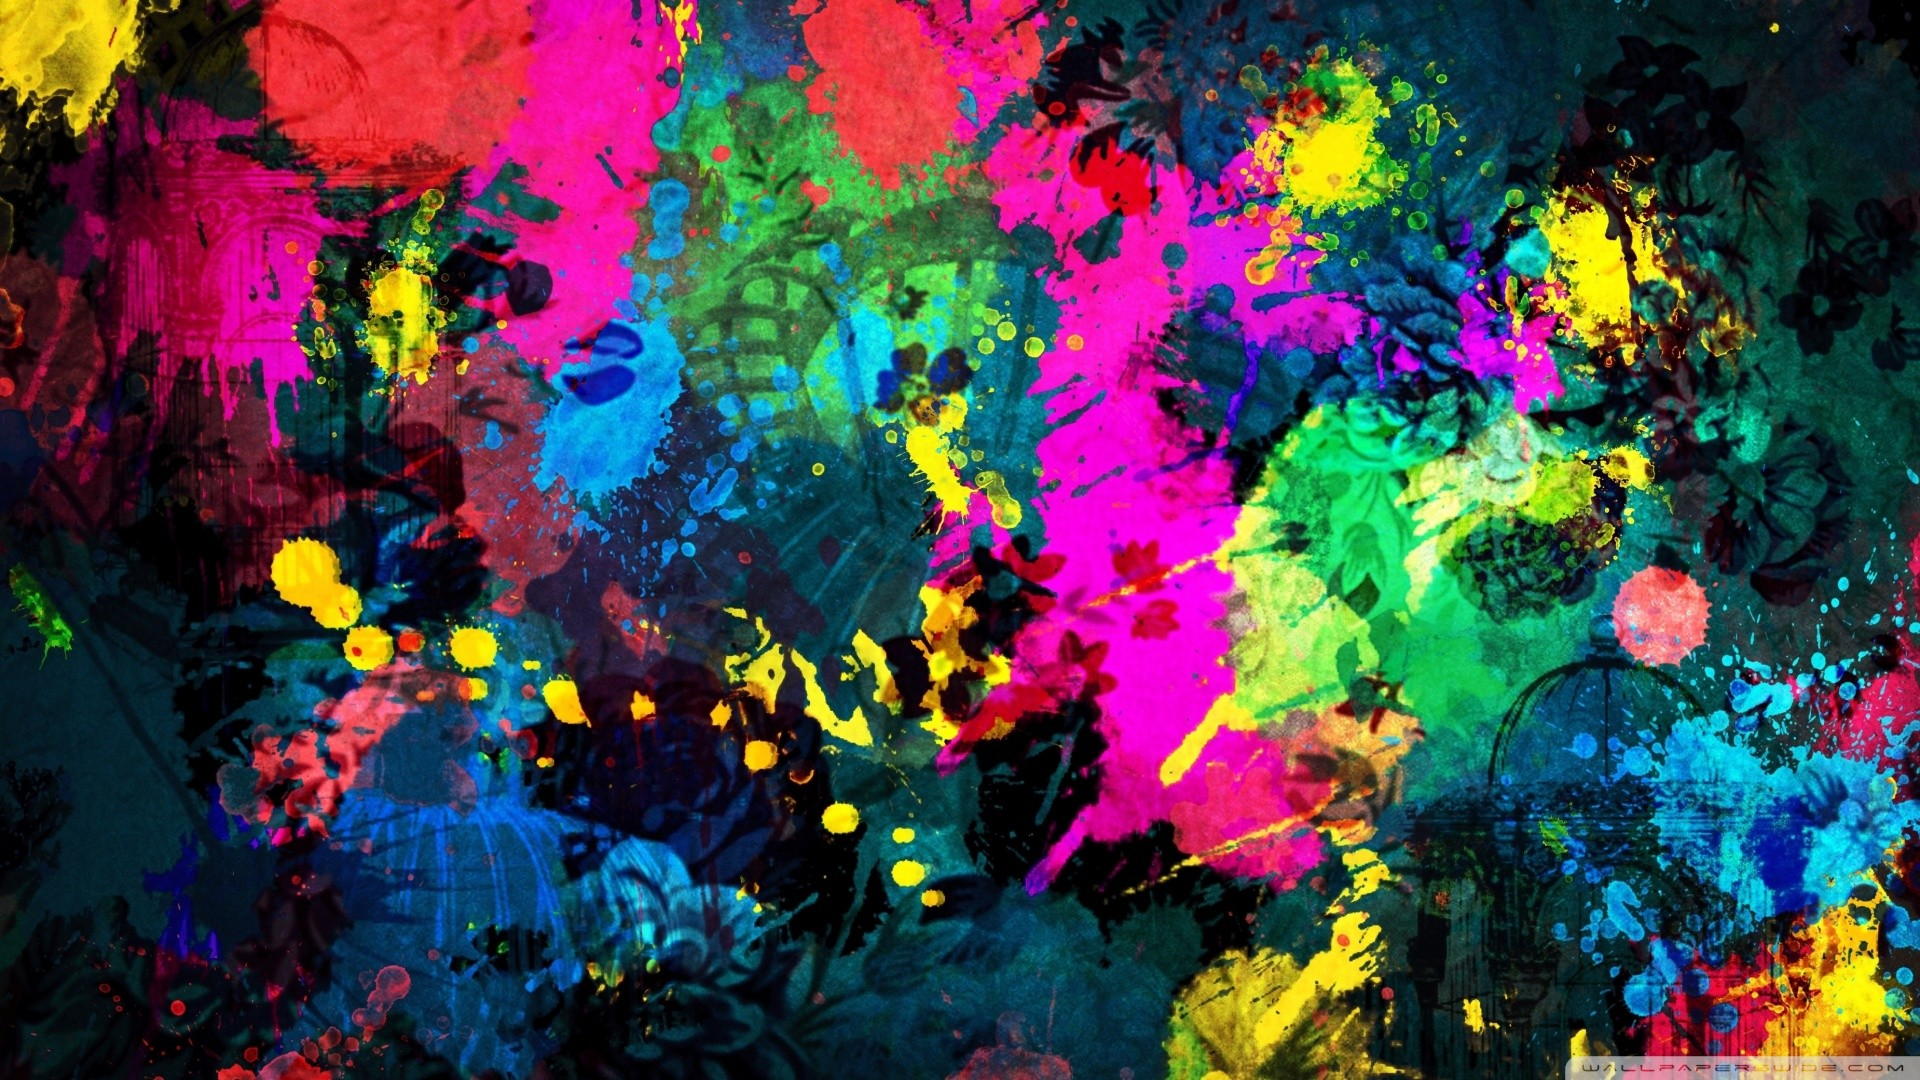 1920x1080 iPT PC Wallpapers: Cool Splatter, by Royce In